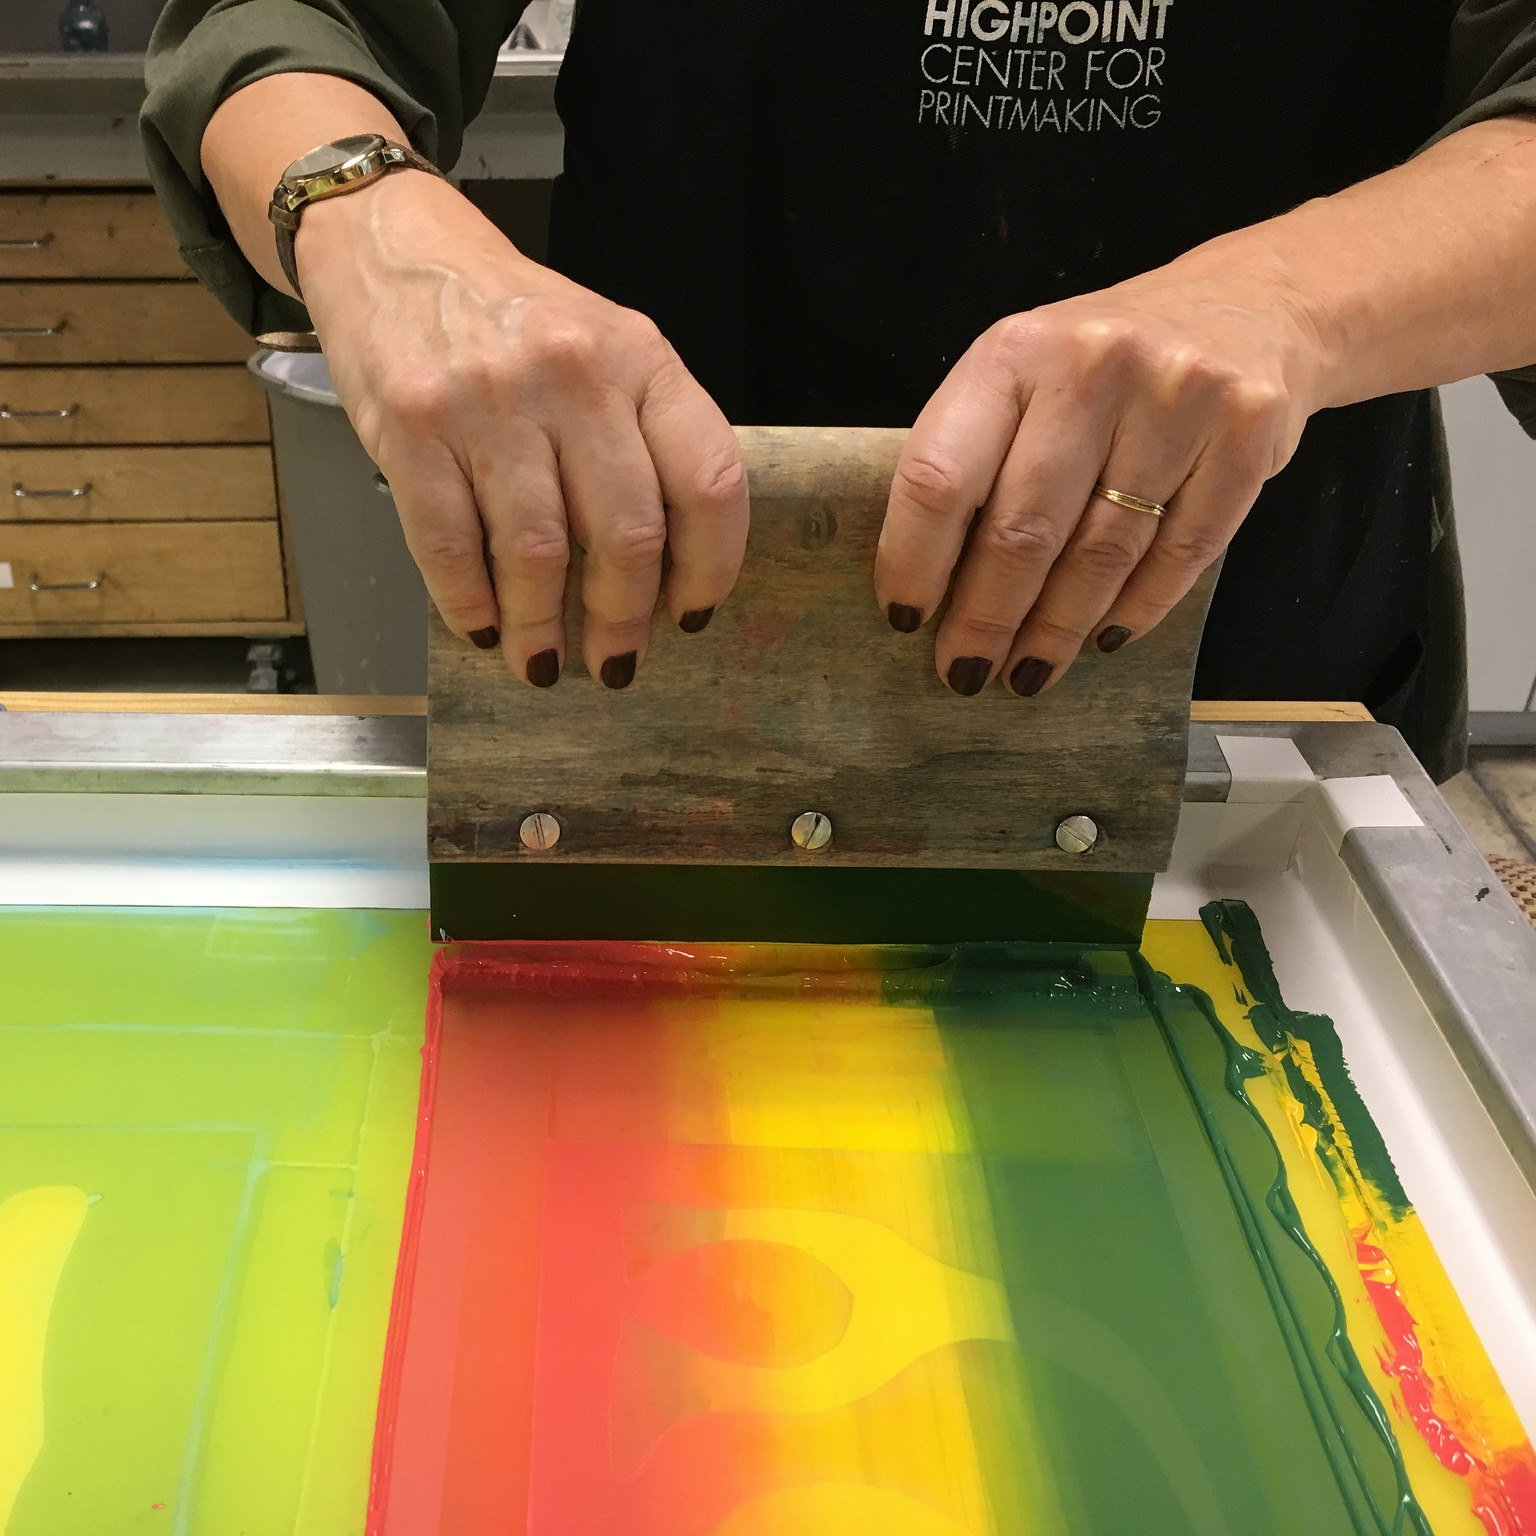 Using a squeegee to push ink through a screen onto paper.